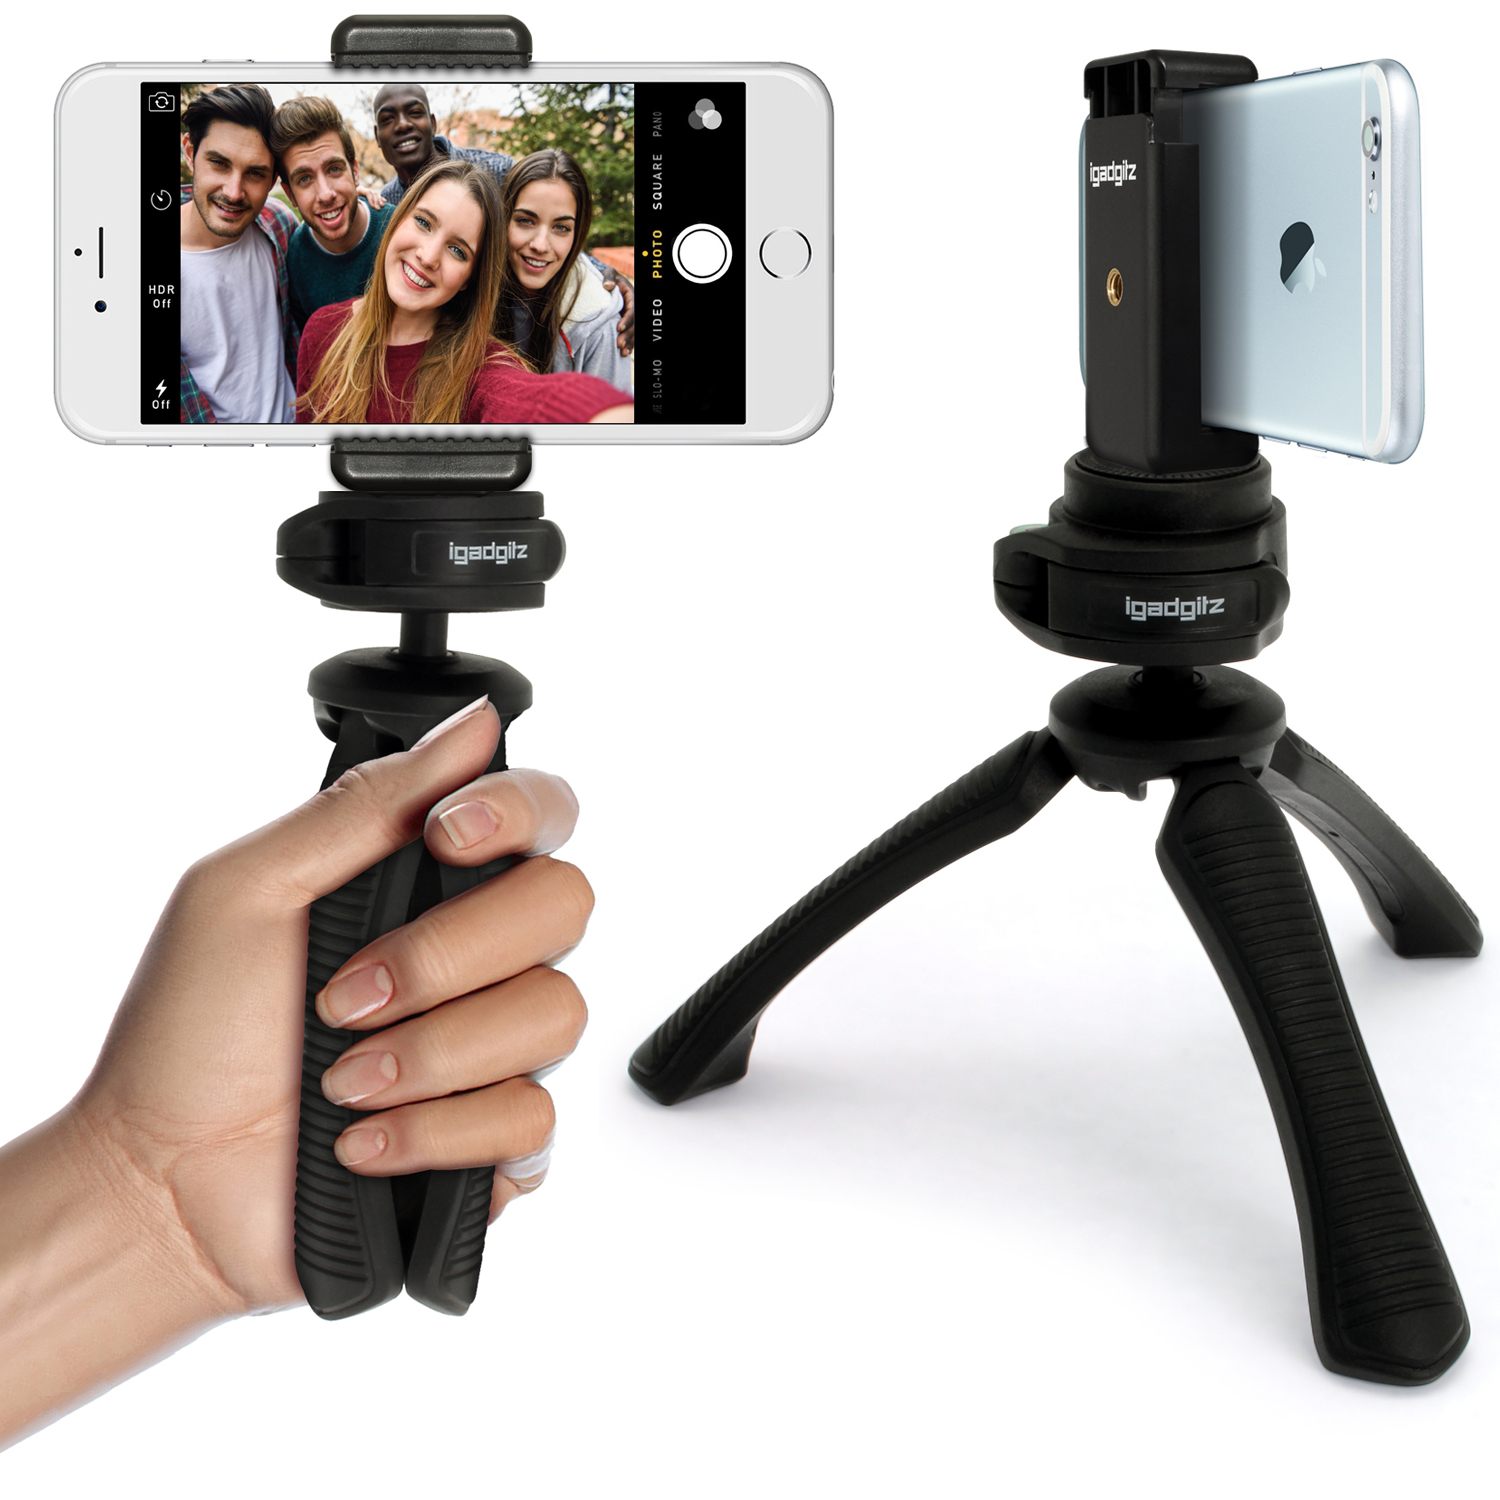 iGadgitz PT310 Mini Table Top Stand Tripod Grip Stabilizer + Universal Smartphone Holder Mount Bracket Adapter ? Black